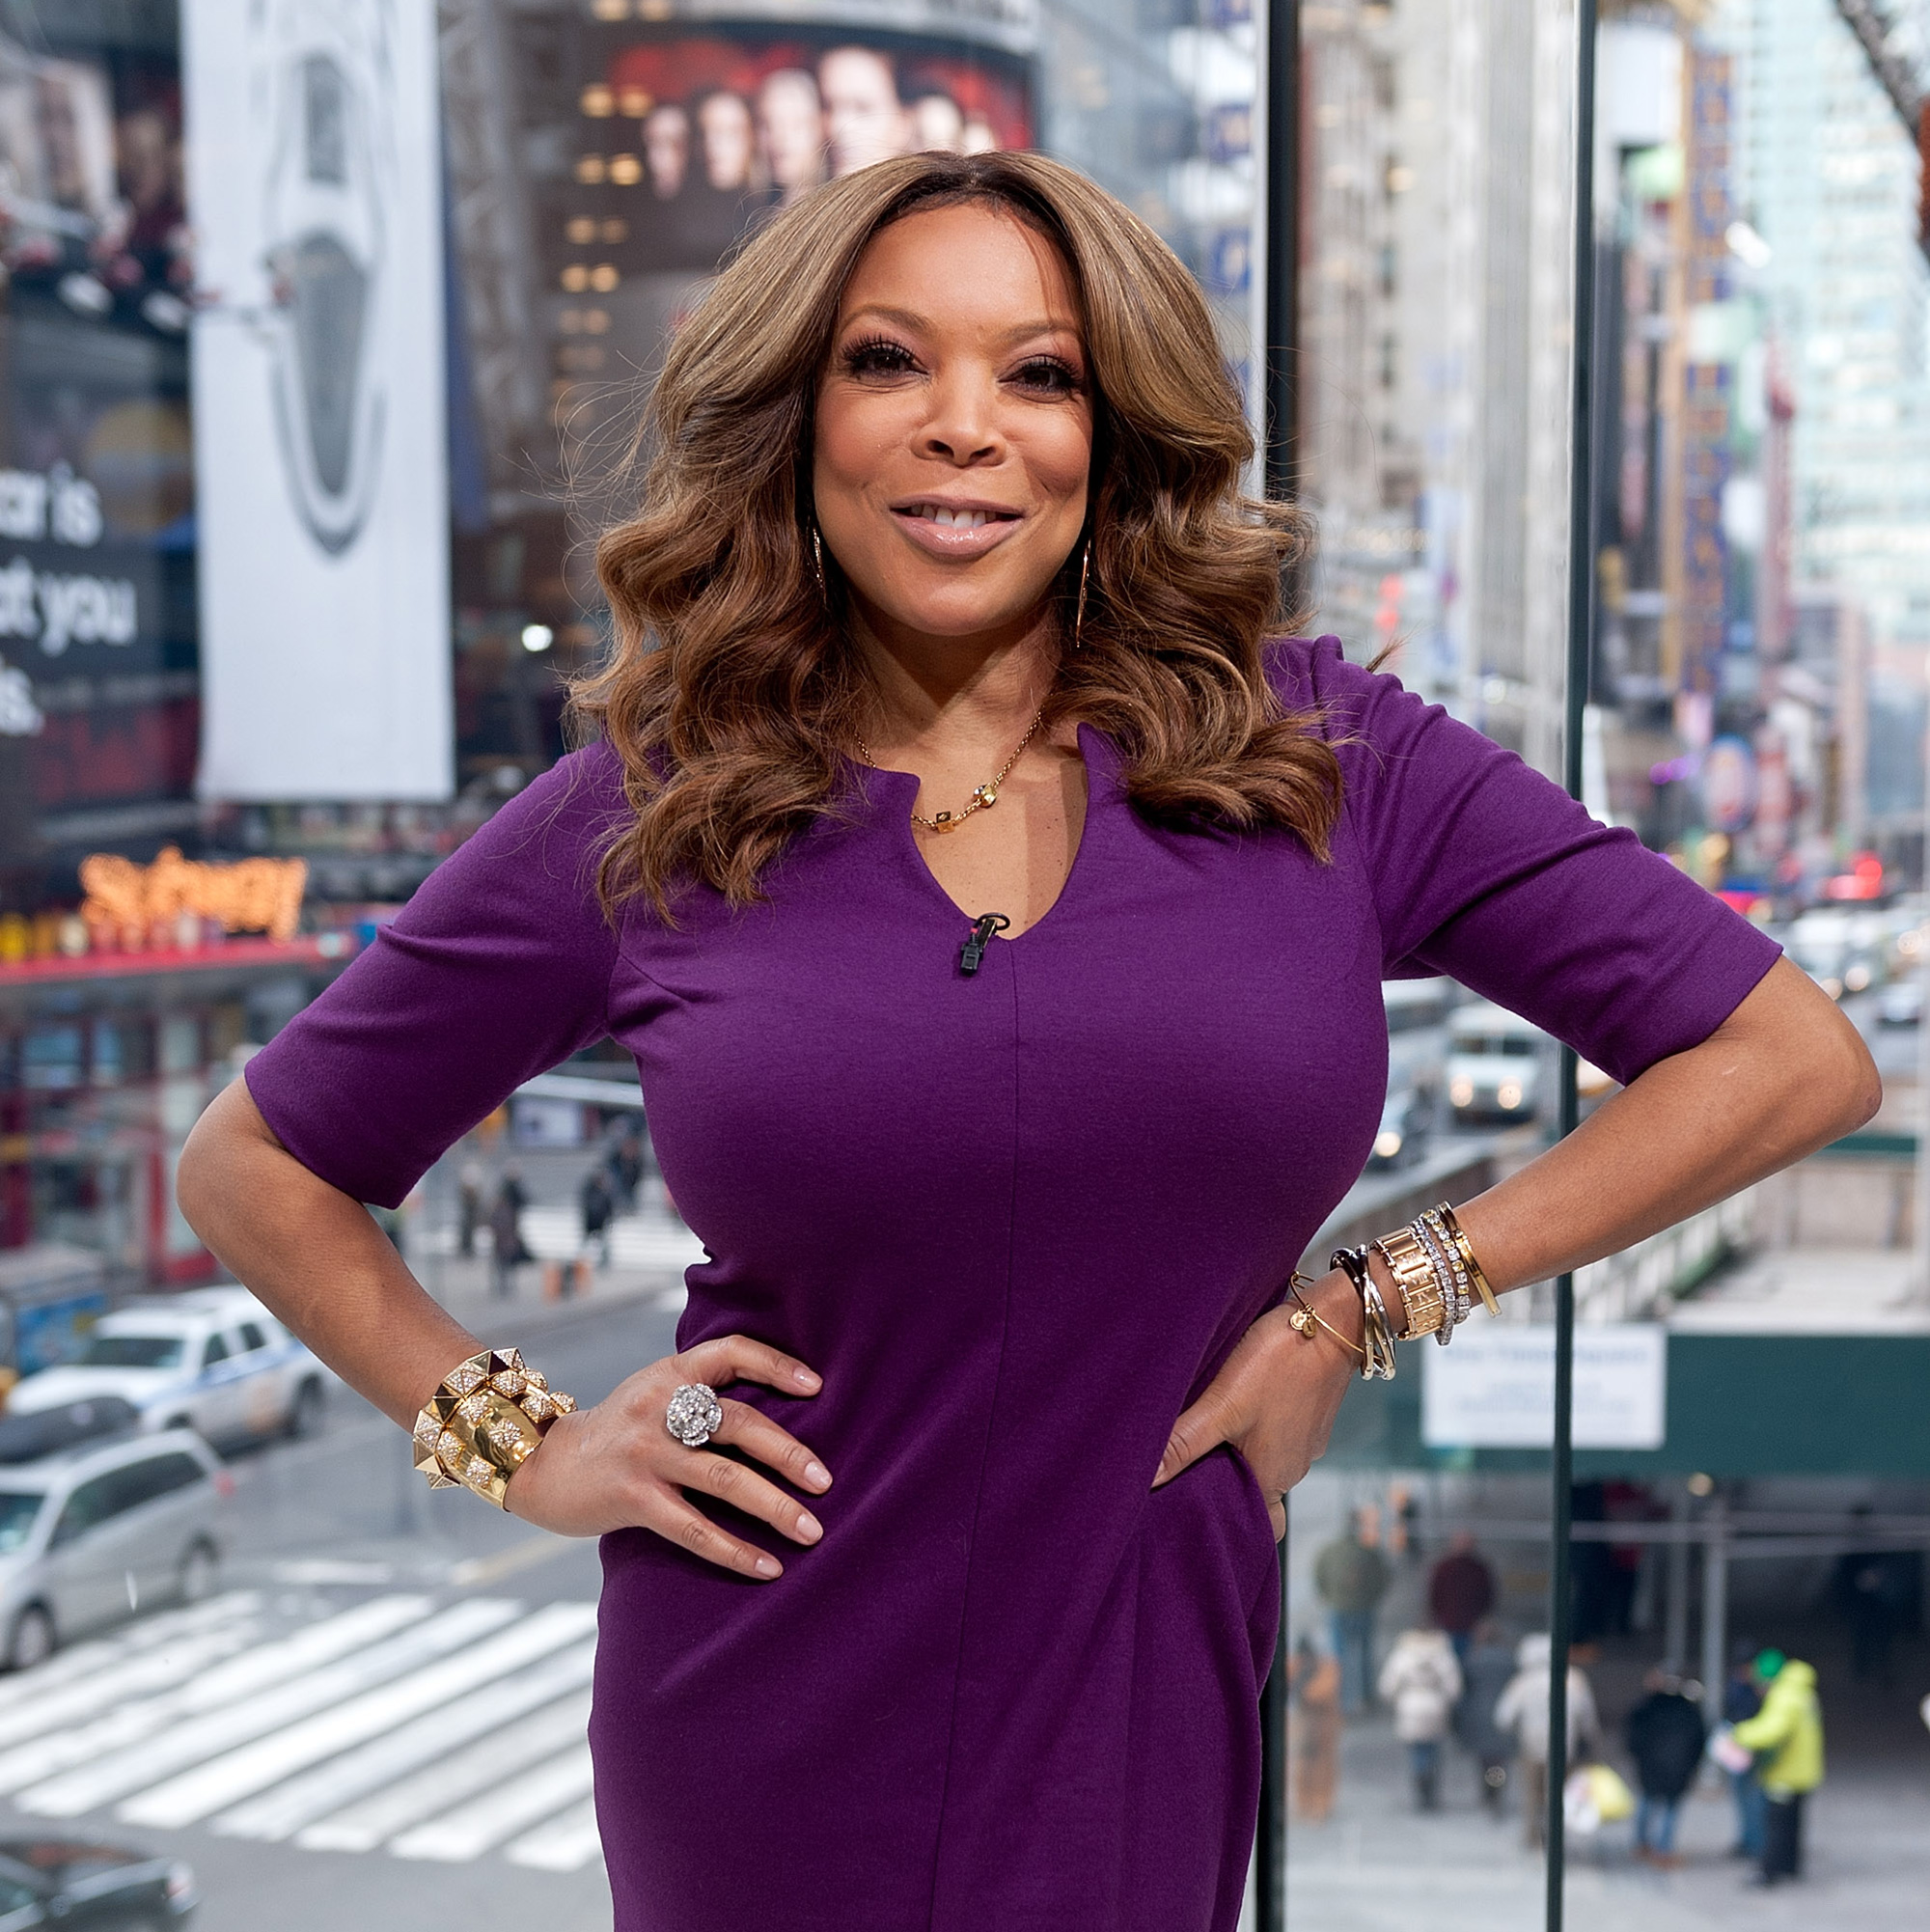 Photos Wendy Williams nudes (26 foto and video), Topless, Cleavage, Feet, lingerie 2006